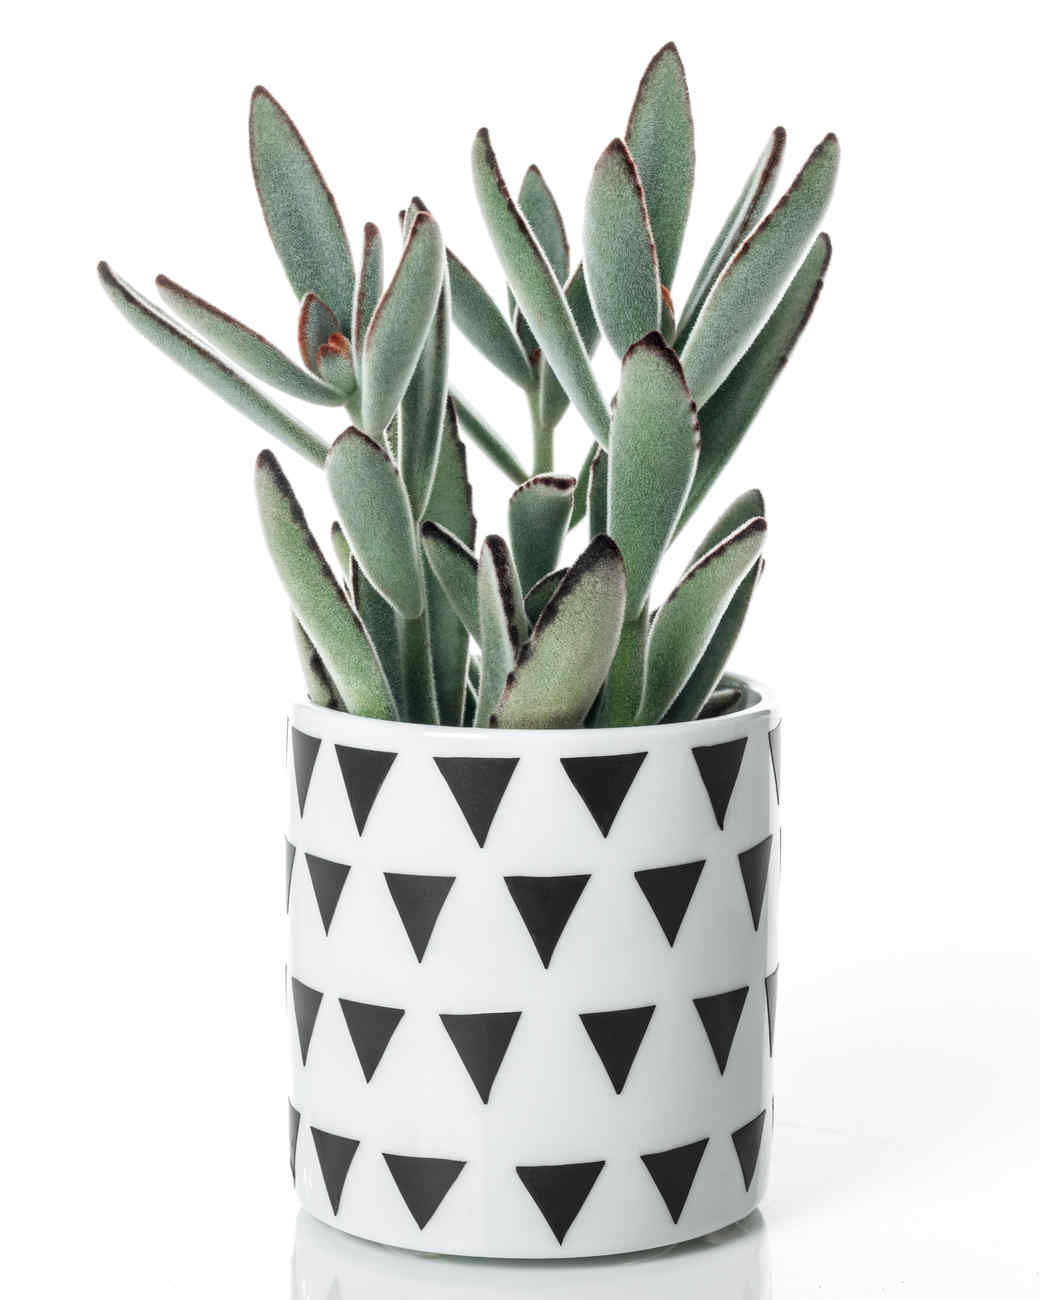 panda plant succulent in container with triangle pattern